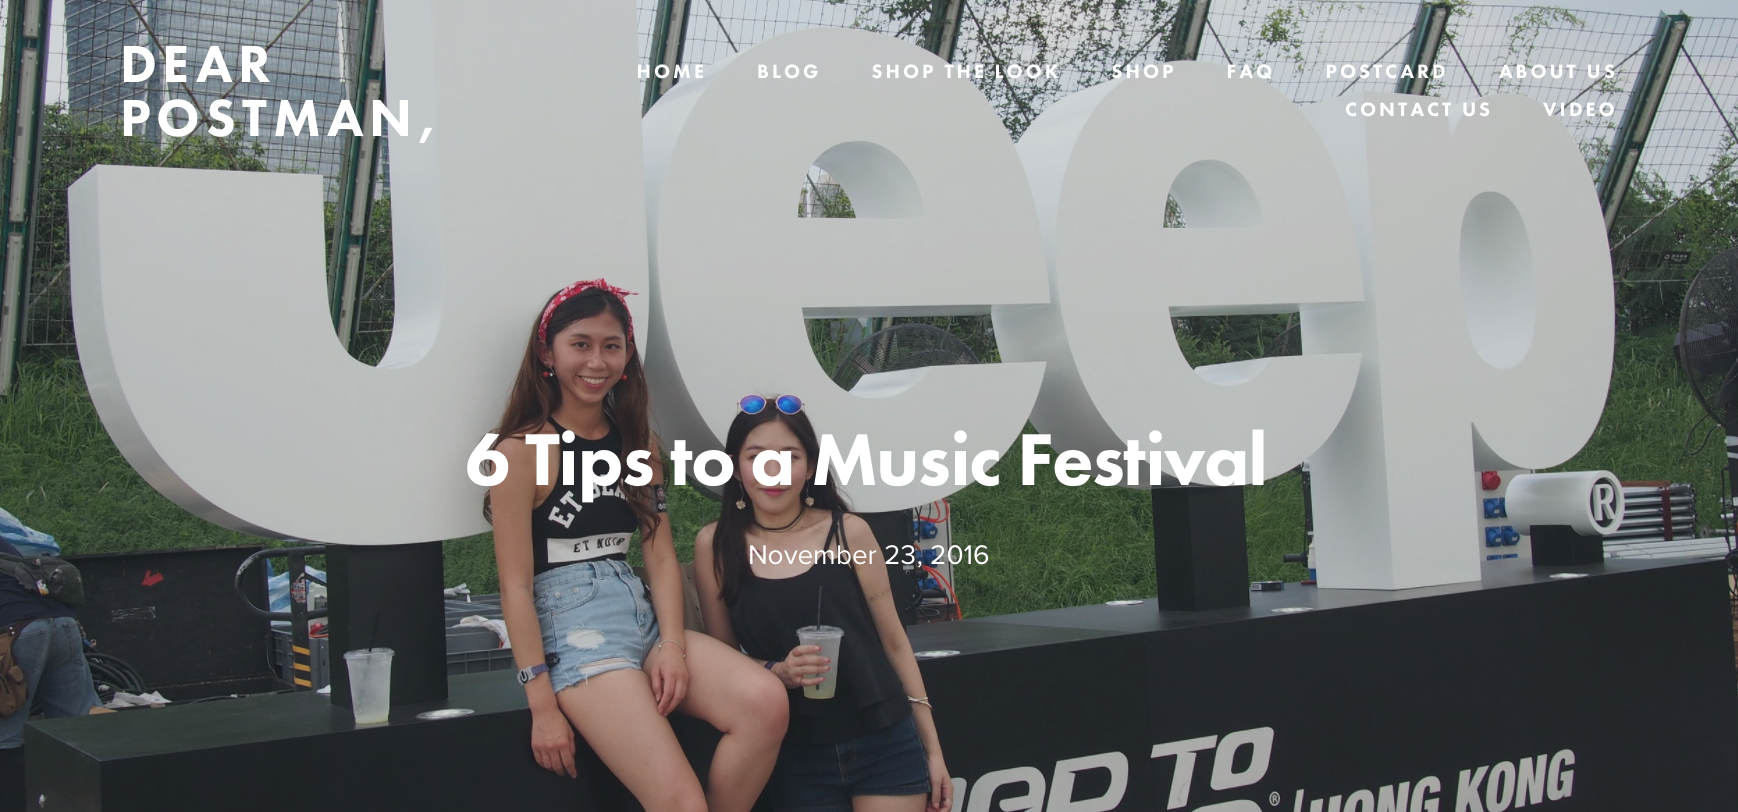 6 Tips to a Music Festival